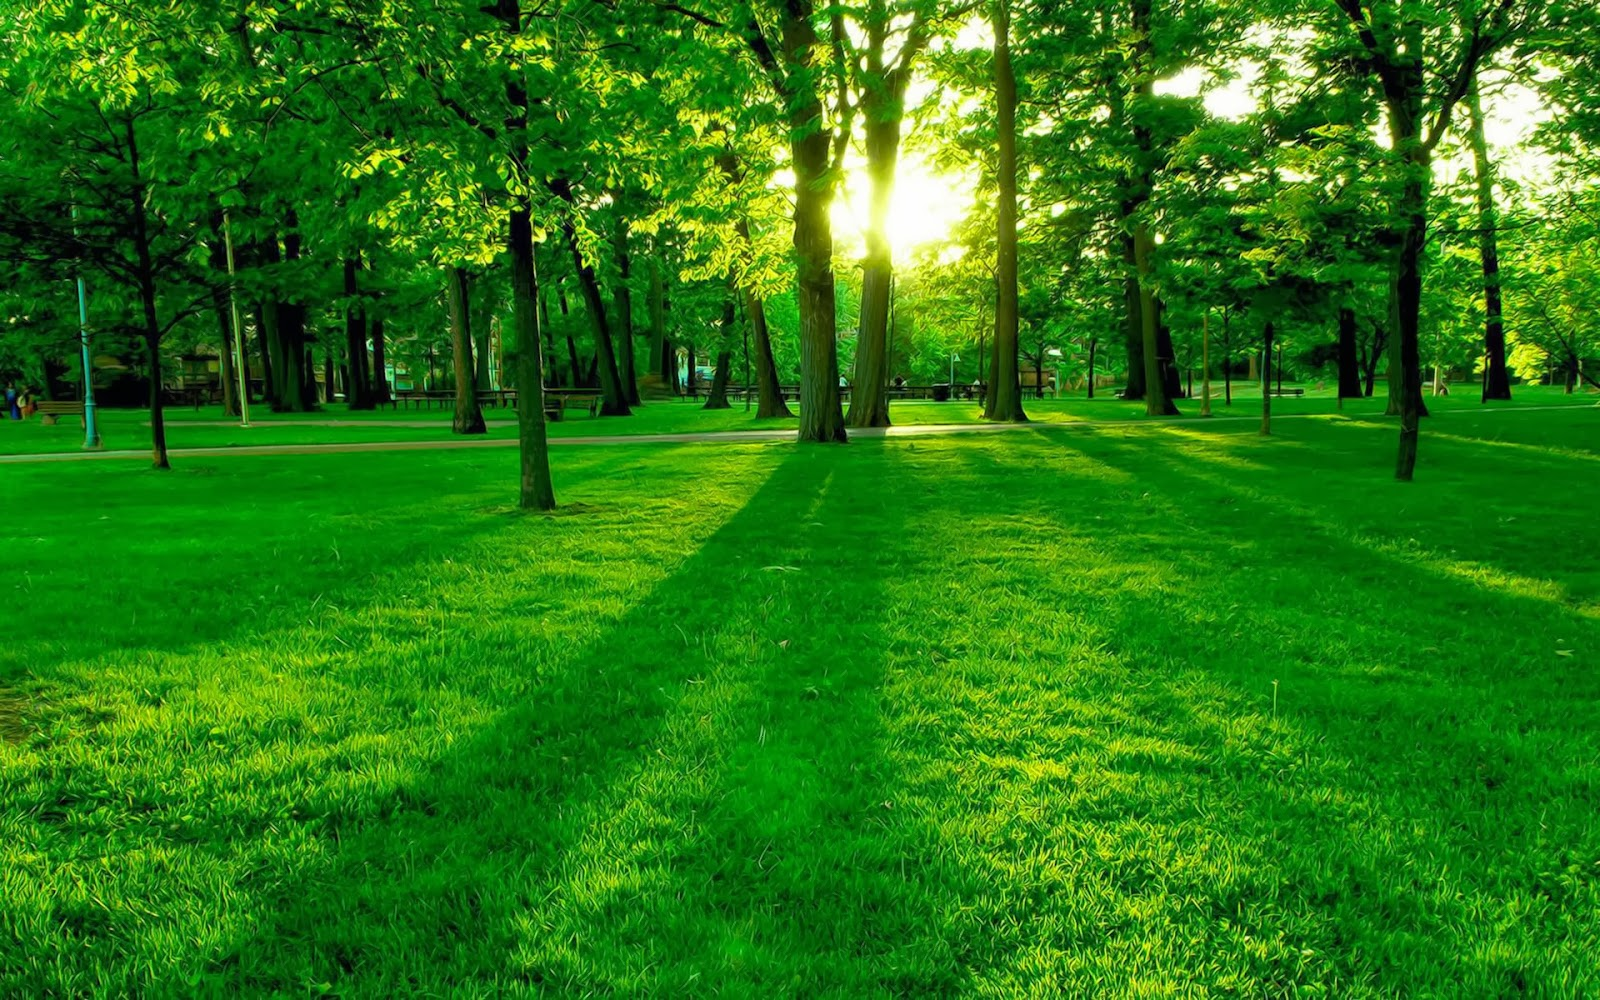 Lush Green Grass Park Nature Widescreen HD Desktop Backgrounds Images Wallpapers